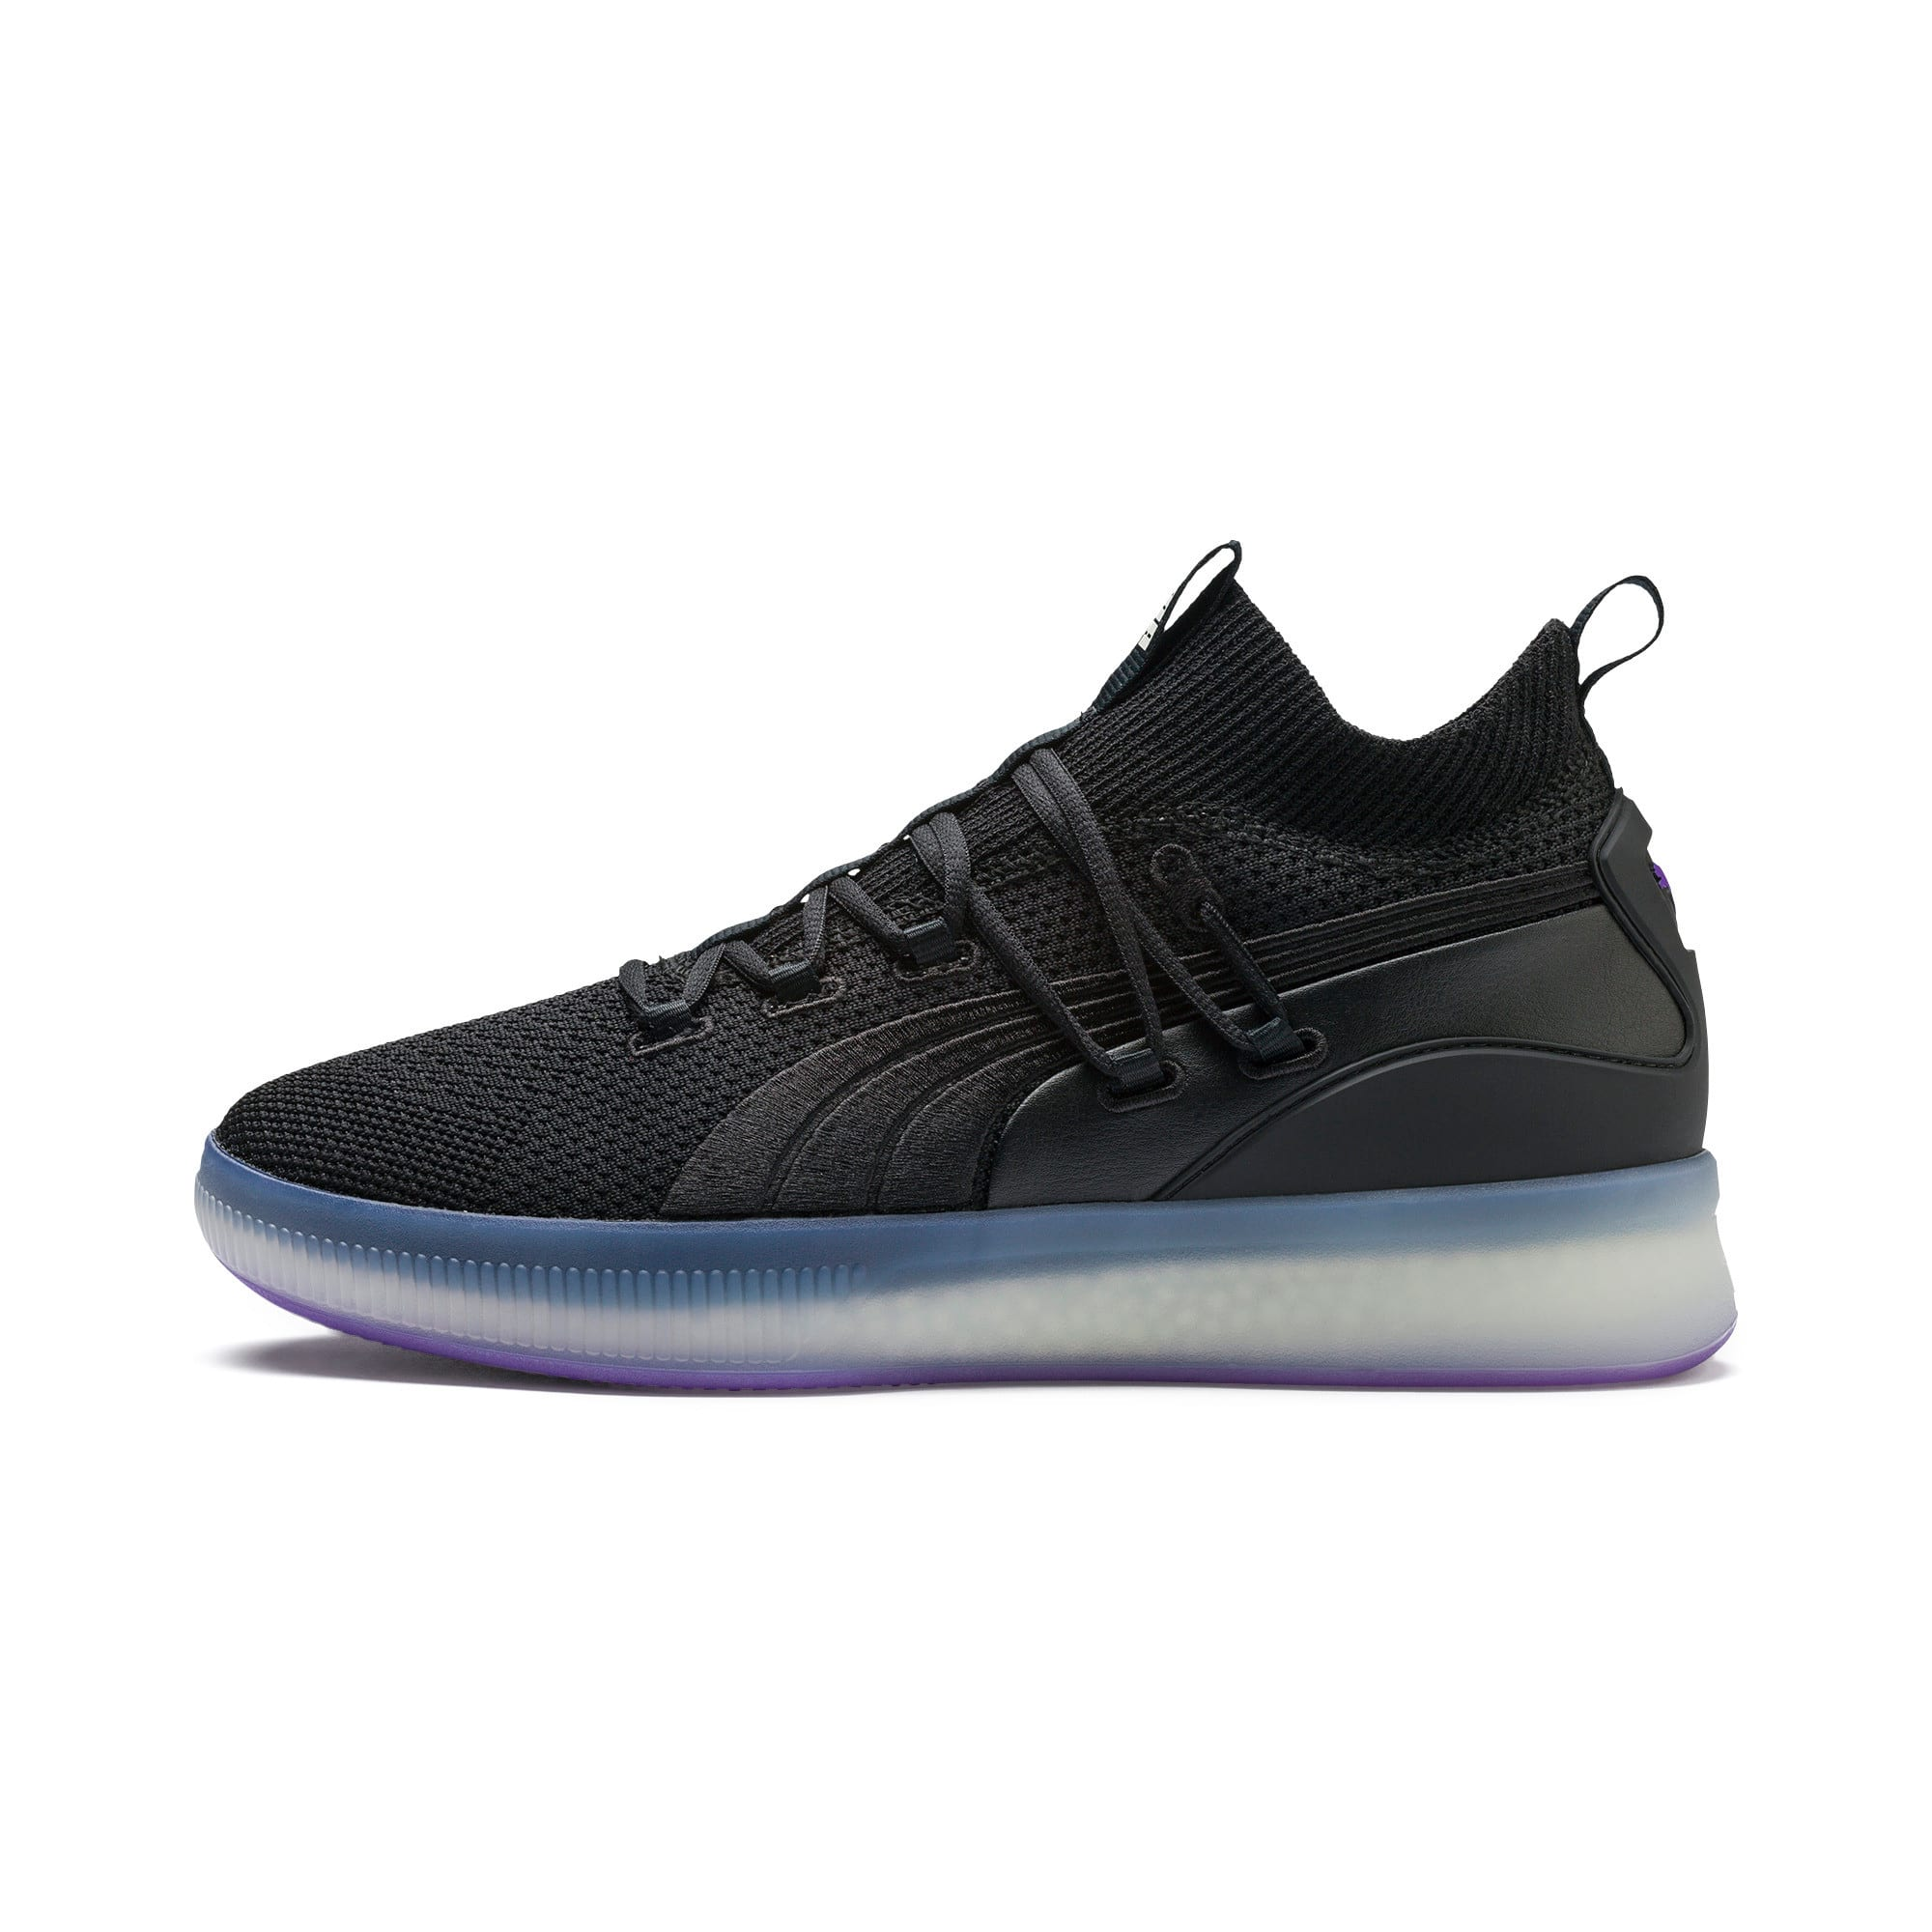 Thumbnail 1 of Clyde Court Disrupt Men's Basketball Shoes, Puma Black-ELECTRIC PURPLE, medium